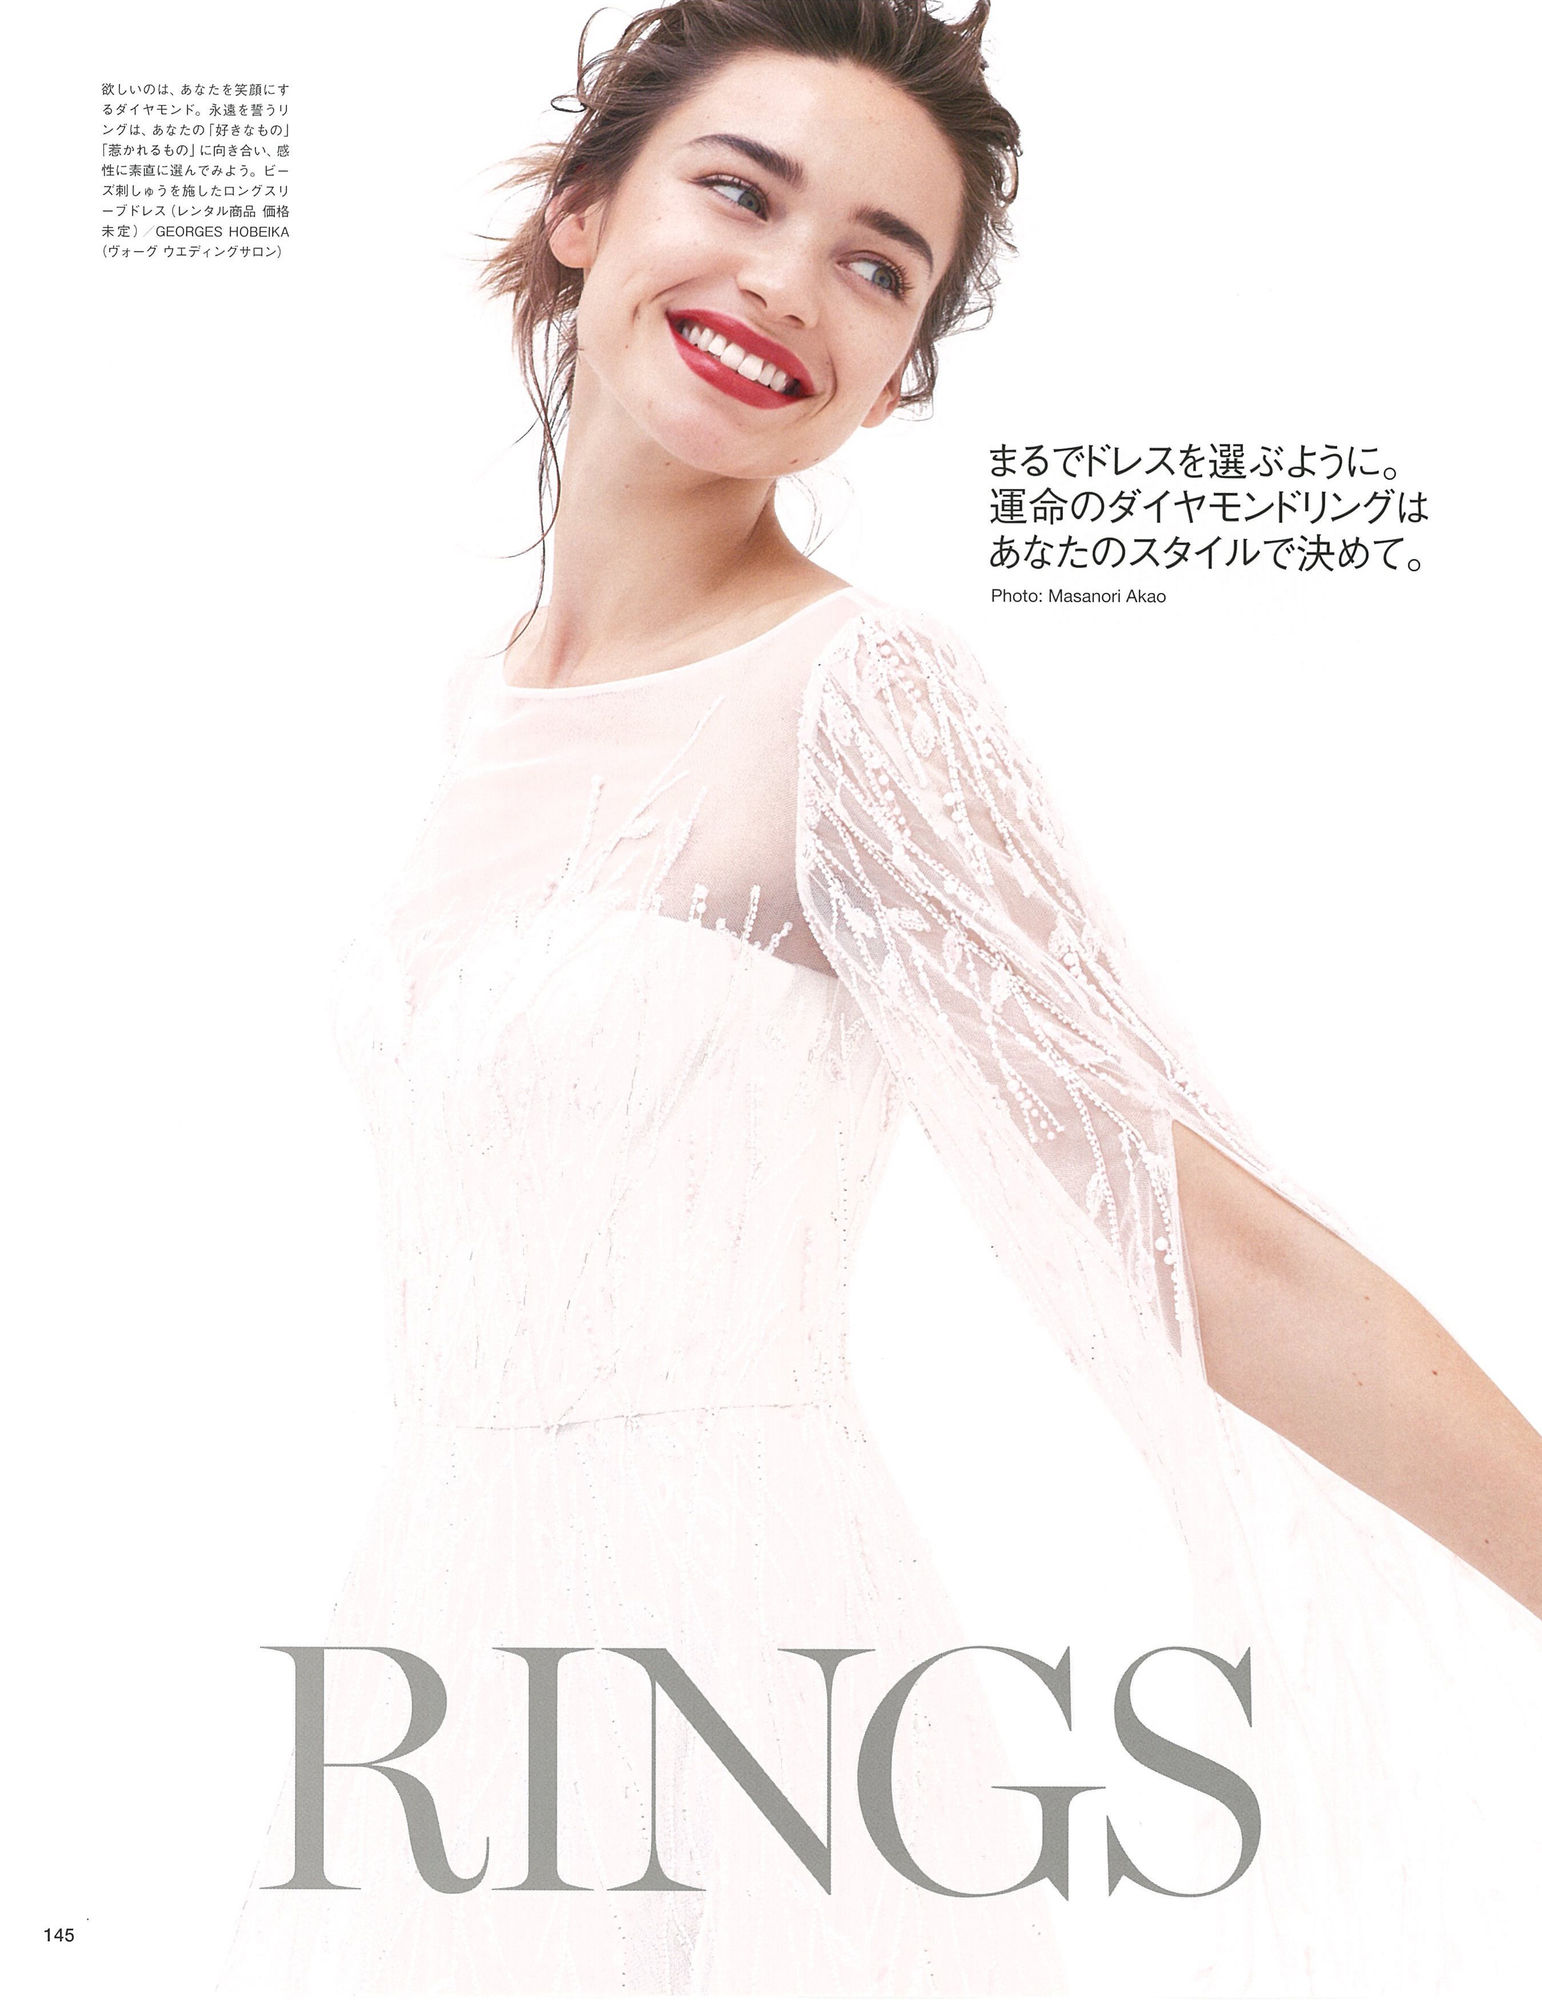 Karolina Gorzala for Vogue Wedding Japan shot by Masanori Akao